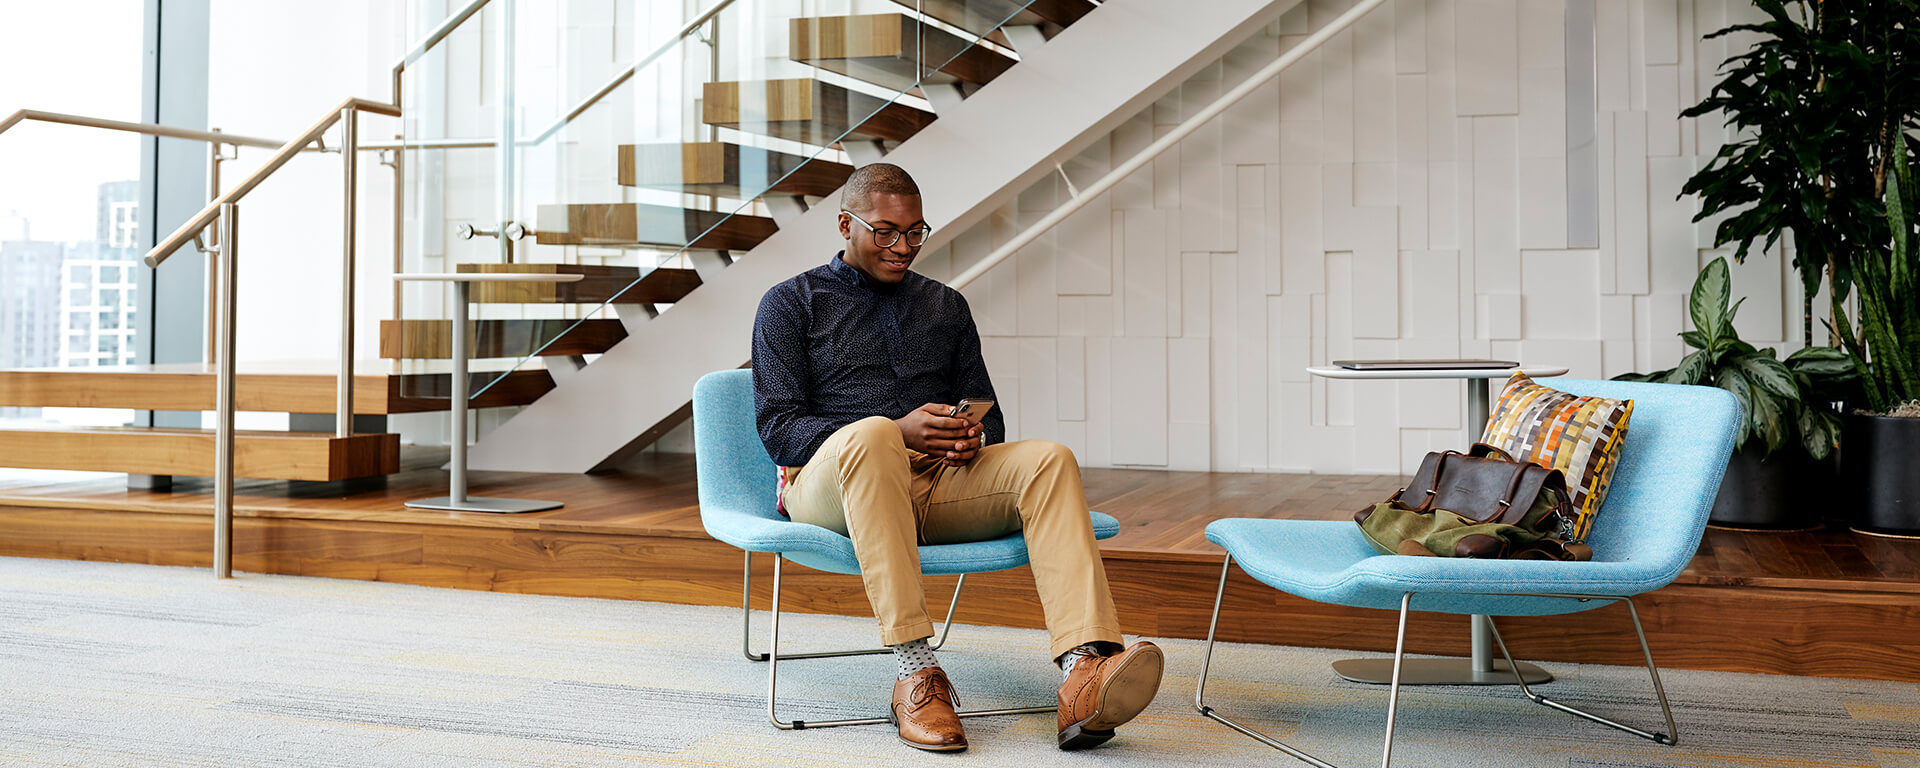 Capital One student and grad associate sits in a chair in front of a stairwell at a Capital One office and talks about his internship experience